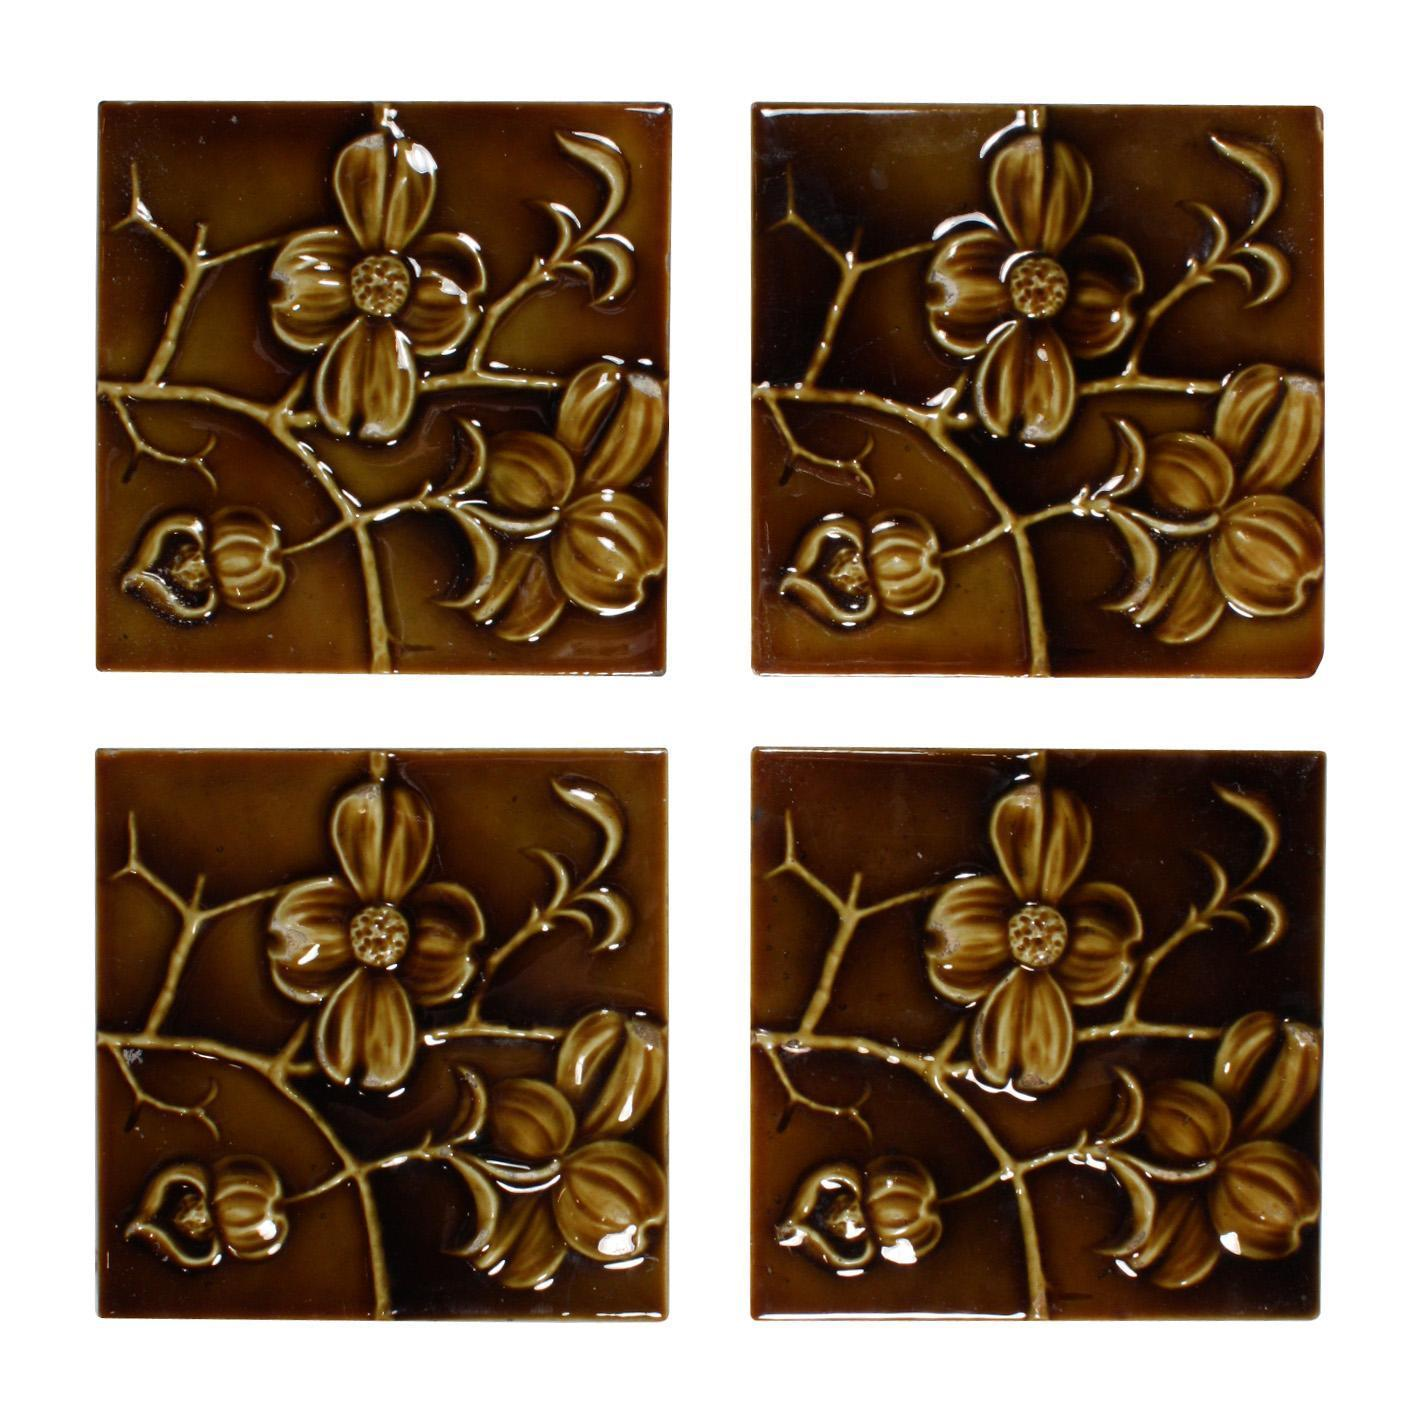 """Delightful Antique Tiles with Dogwood Flowers, 6"""" x 6"""", Columbia Tile Co."""